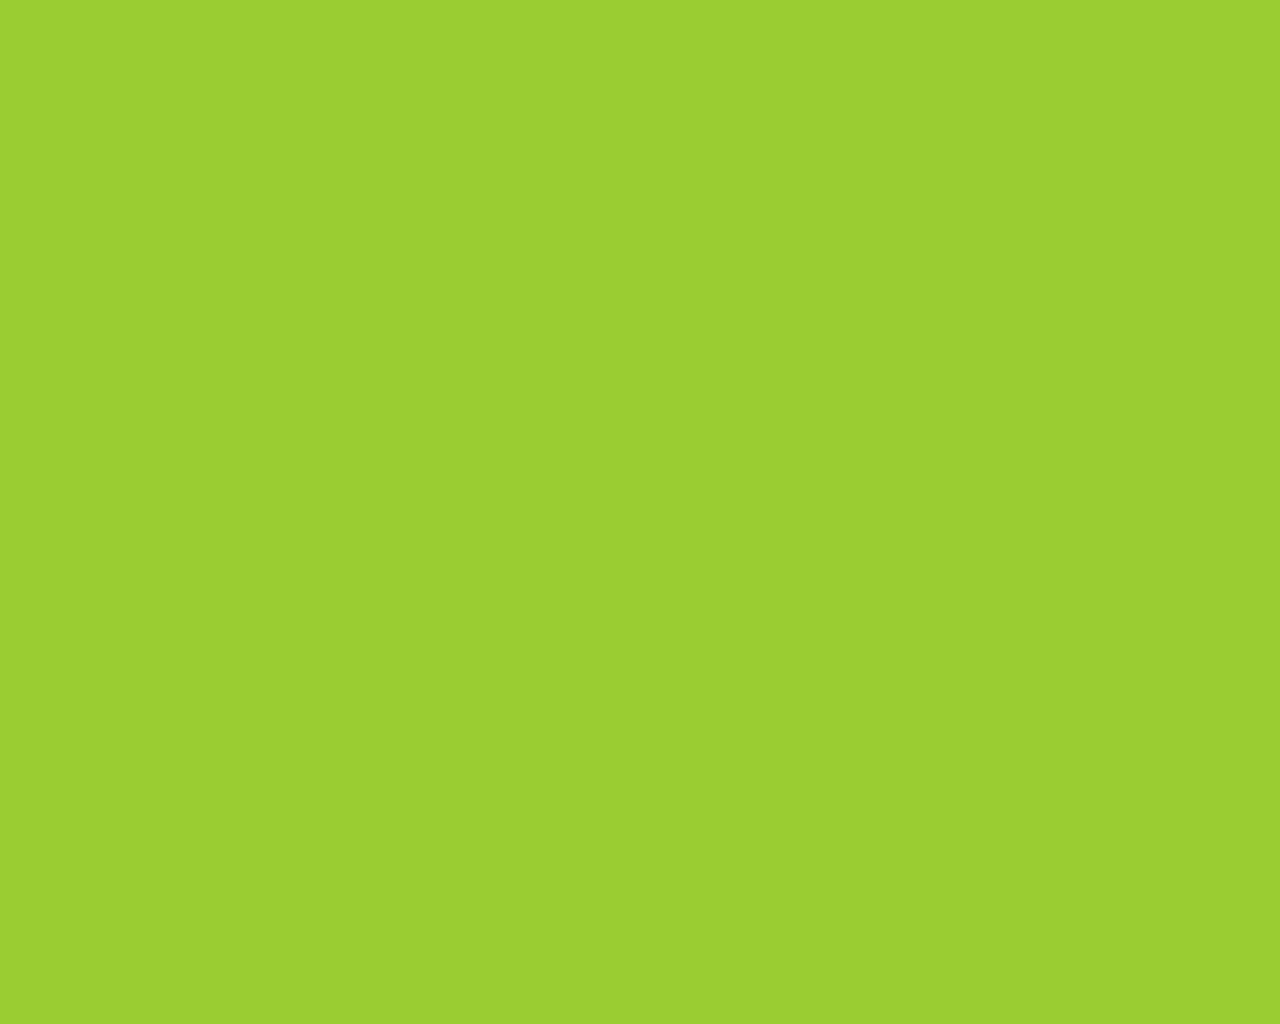 1280x1024 Yellow-green Solid Color Background